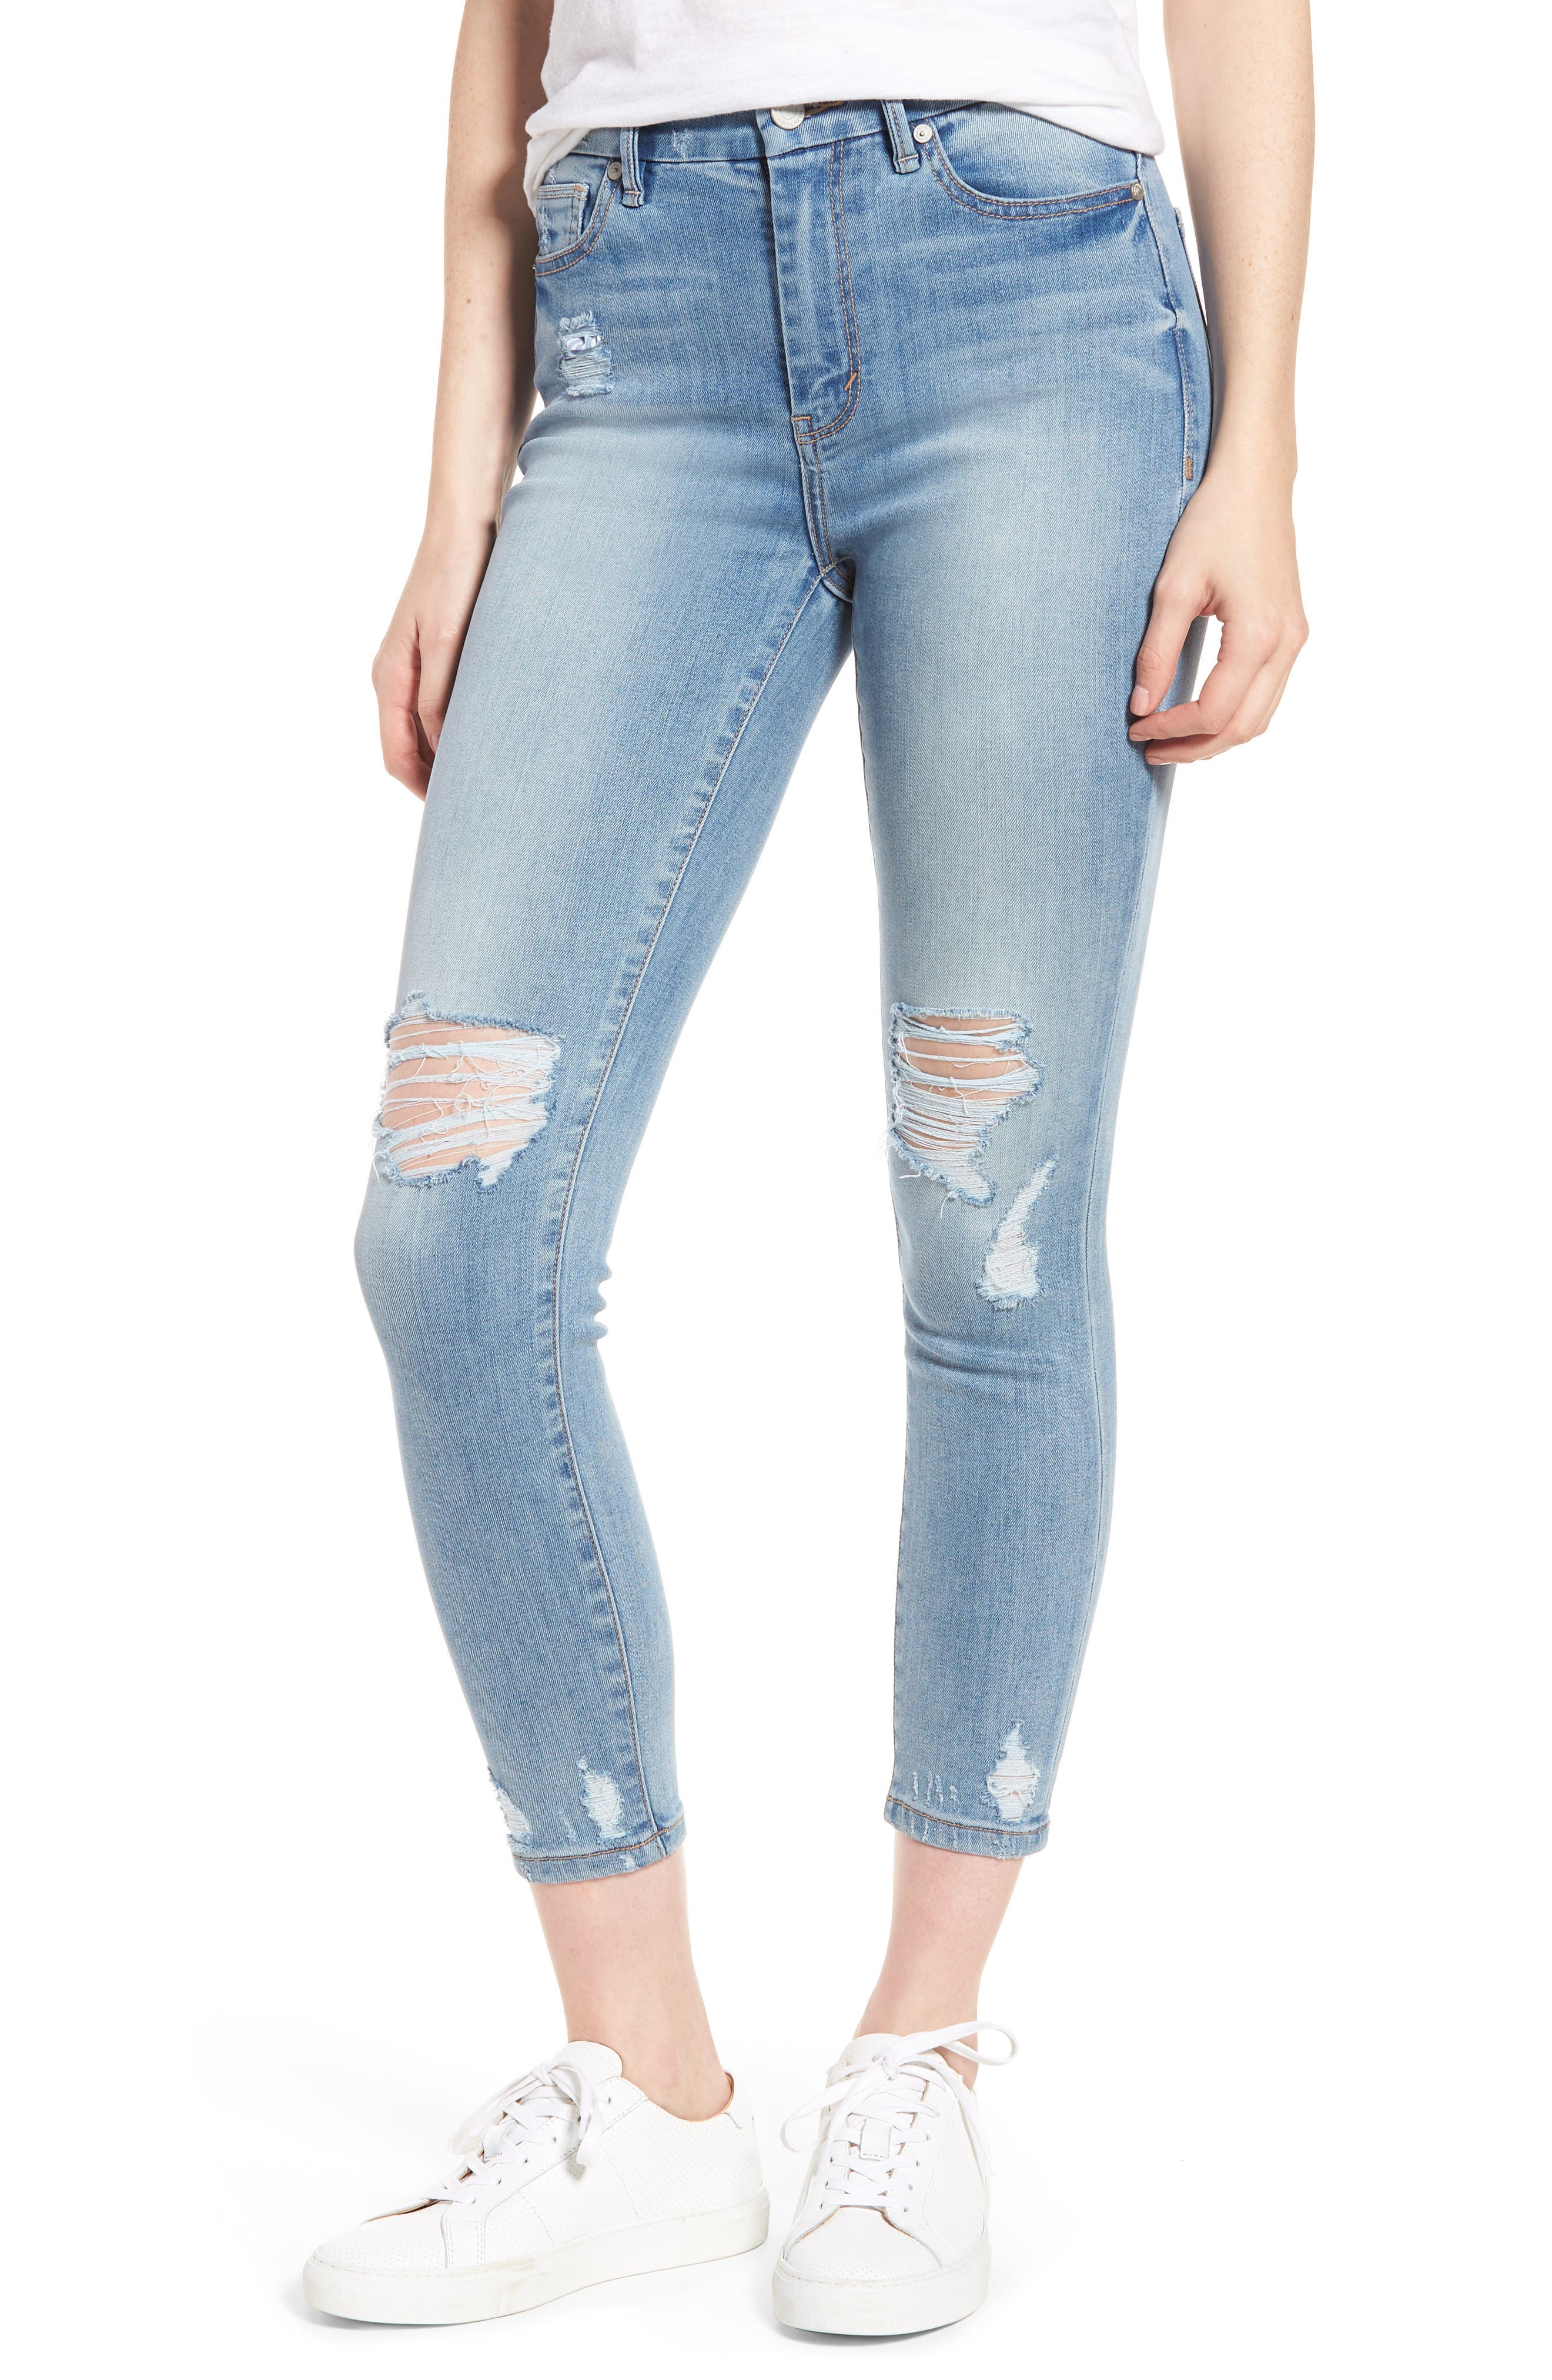 Cressa High Rise Ankle Skinny Jeans,                         Main,                         color, Varnish